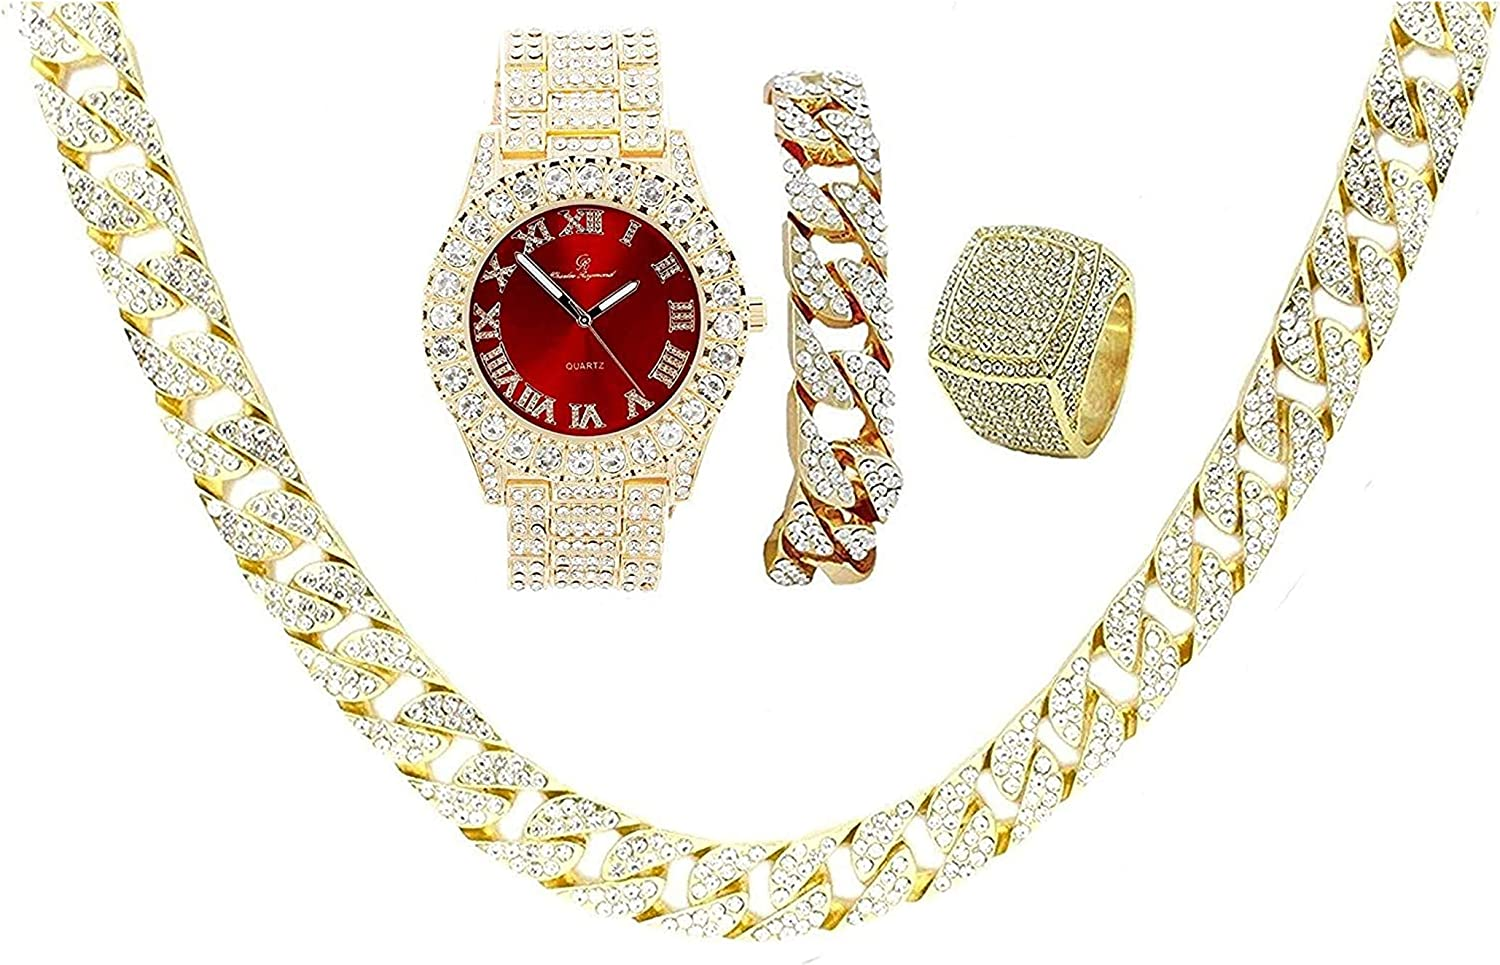 Fully Iced Mens Gold Big Rocks Bezel Bloody-Red Dial with Roman Numerals, Cuban Chain Bracelet, Cuban Necklace & Ring Size - Bloody Red/Gold - ST10327CRNG 81VR-pV-L4LUL1500_